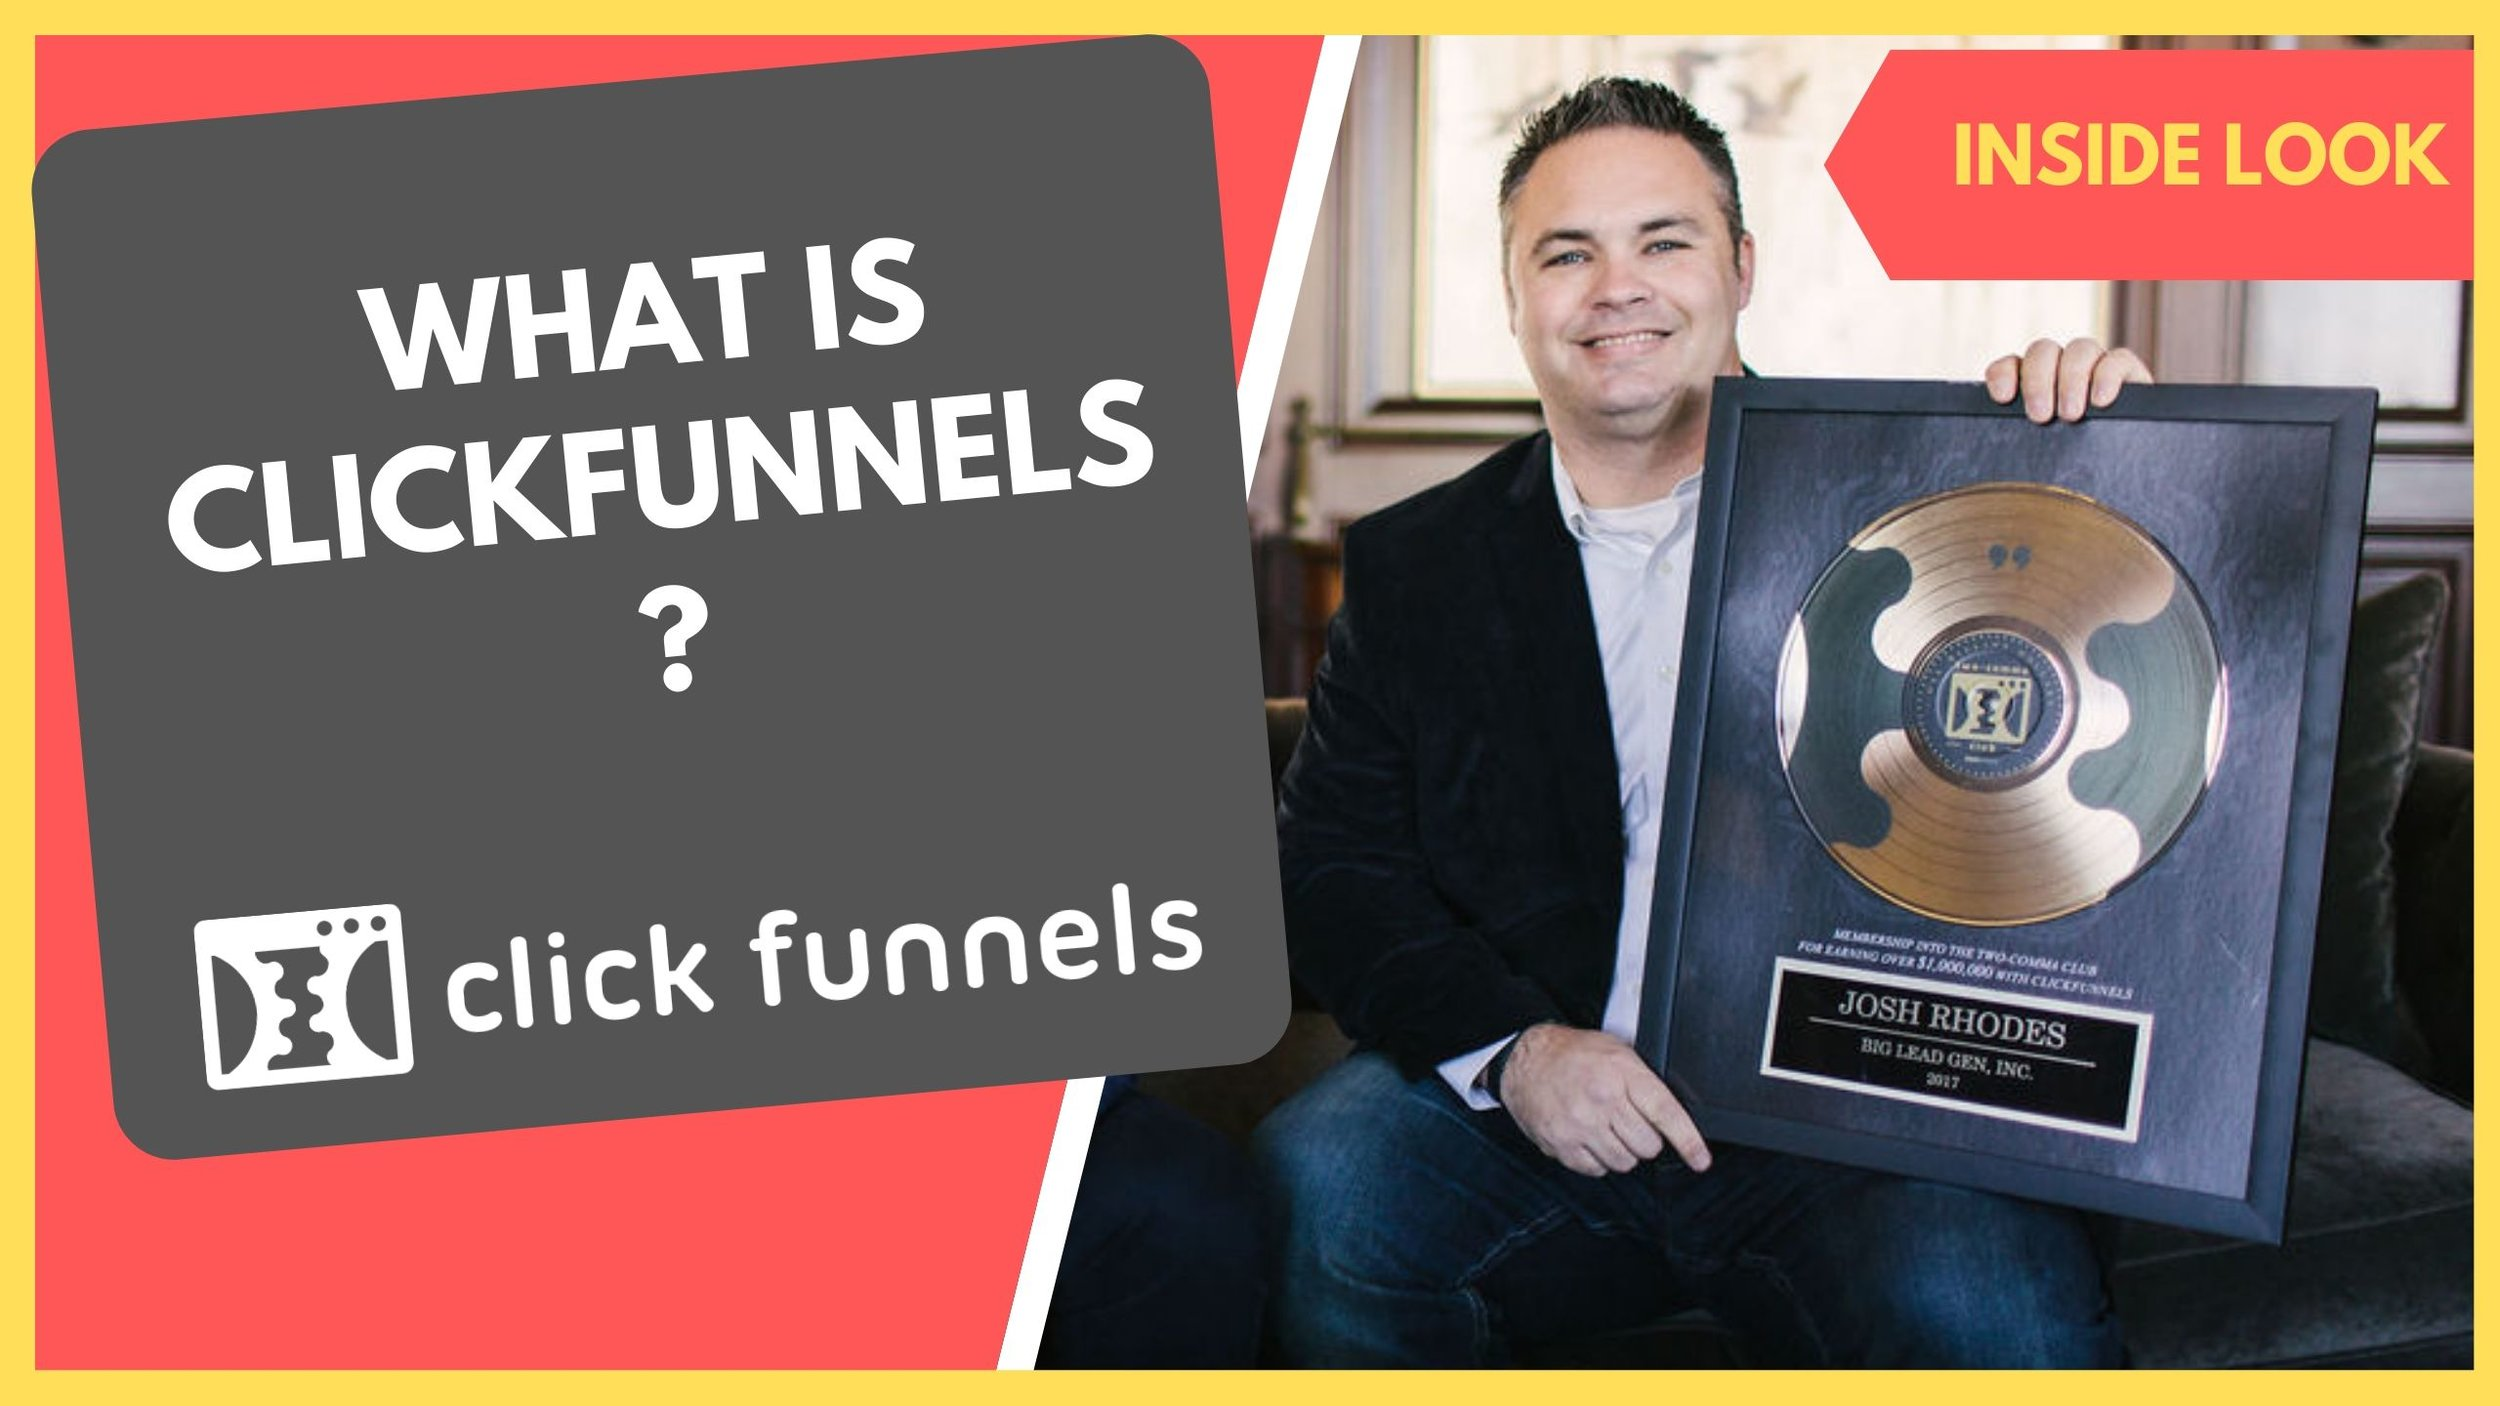 How Many Email Smtp Can Be Set Up Clickfunnels